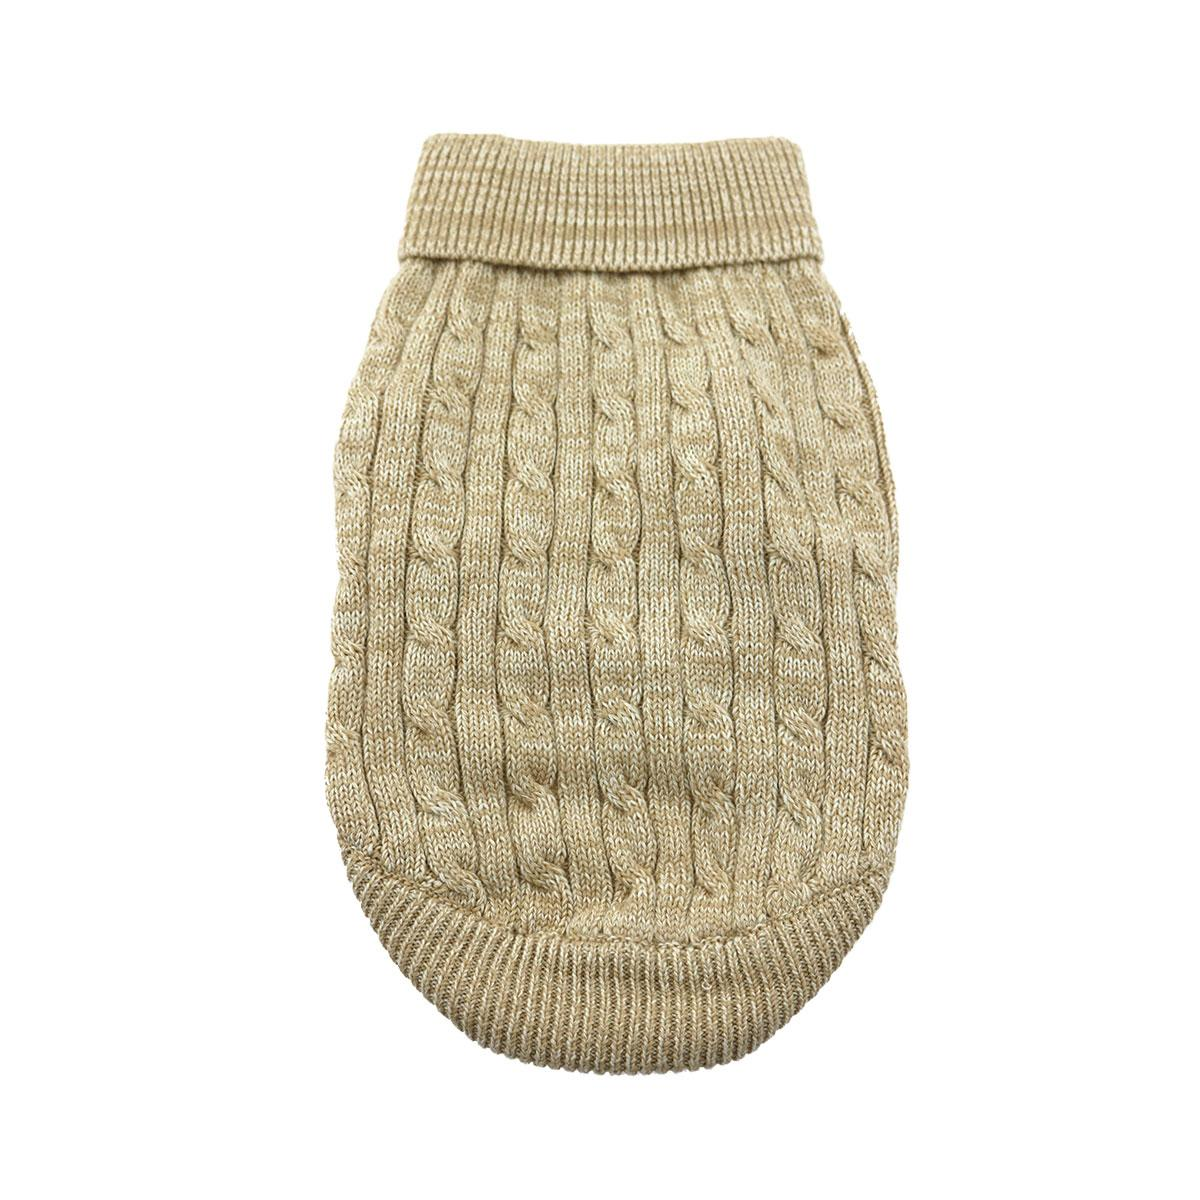 Doggie Design Cotton Dog Sweater, Cable Knit Oatmeal, XX-Small